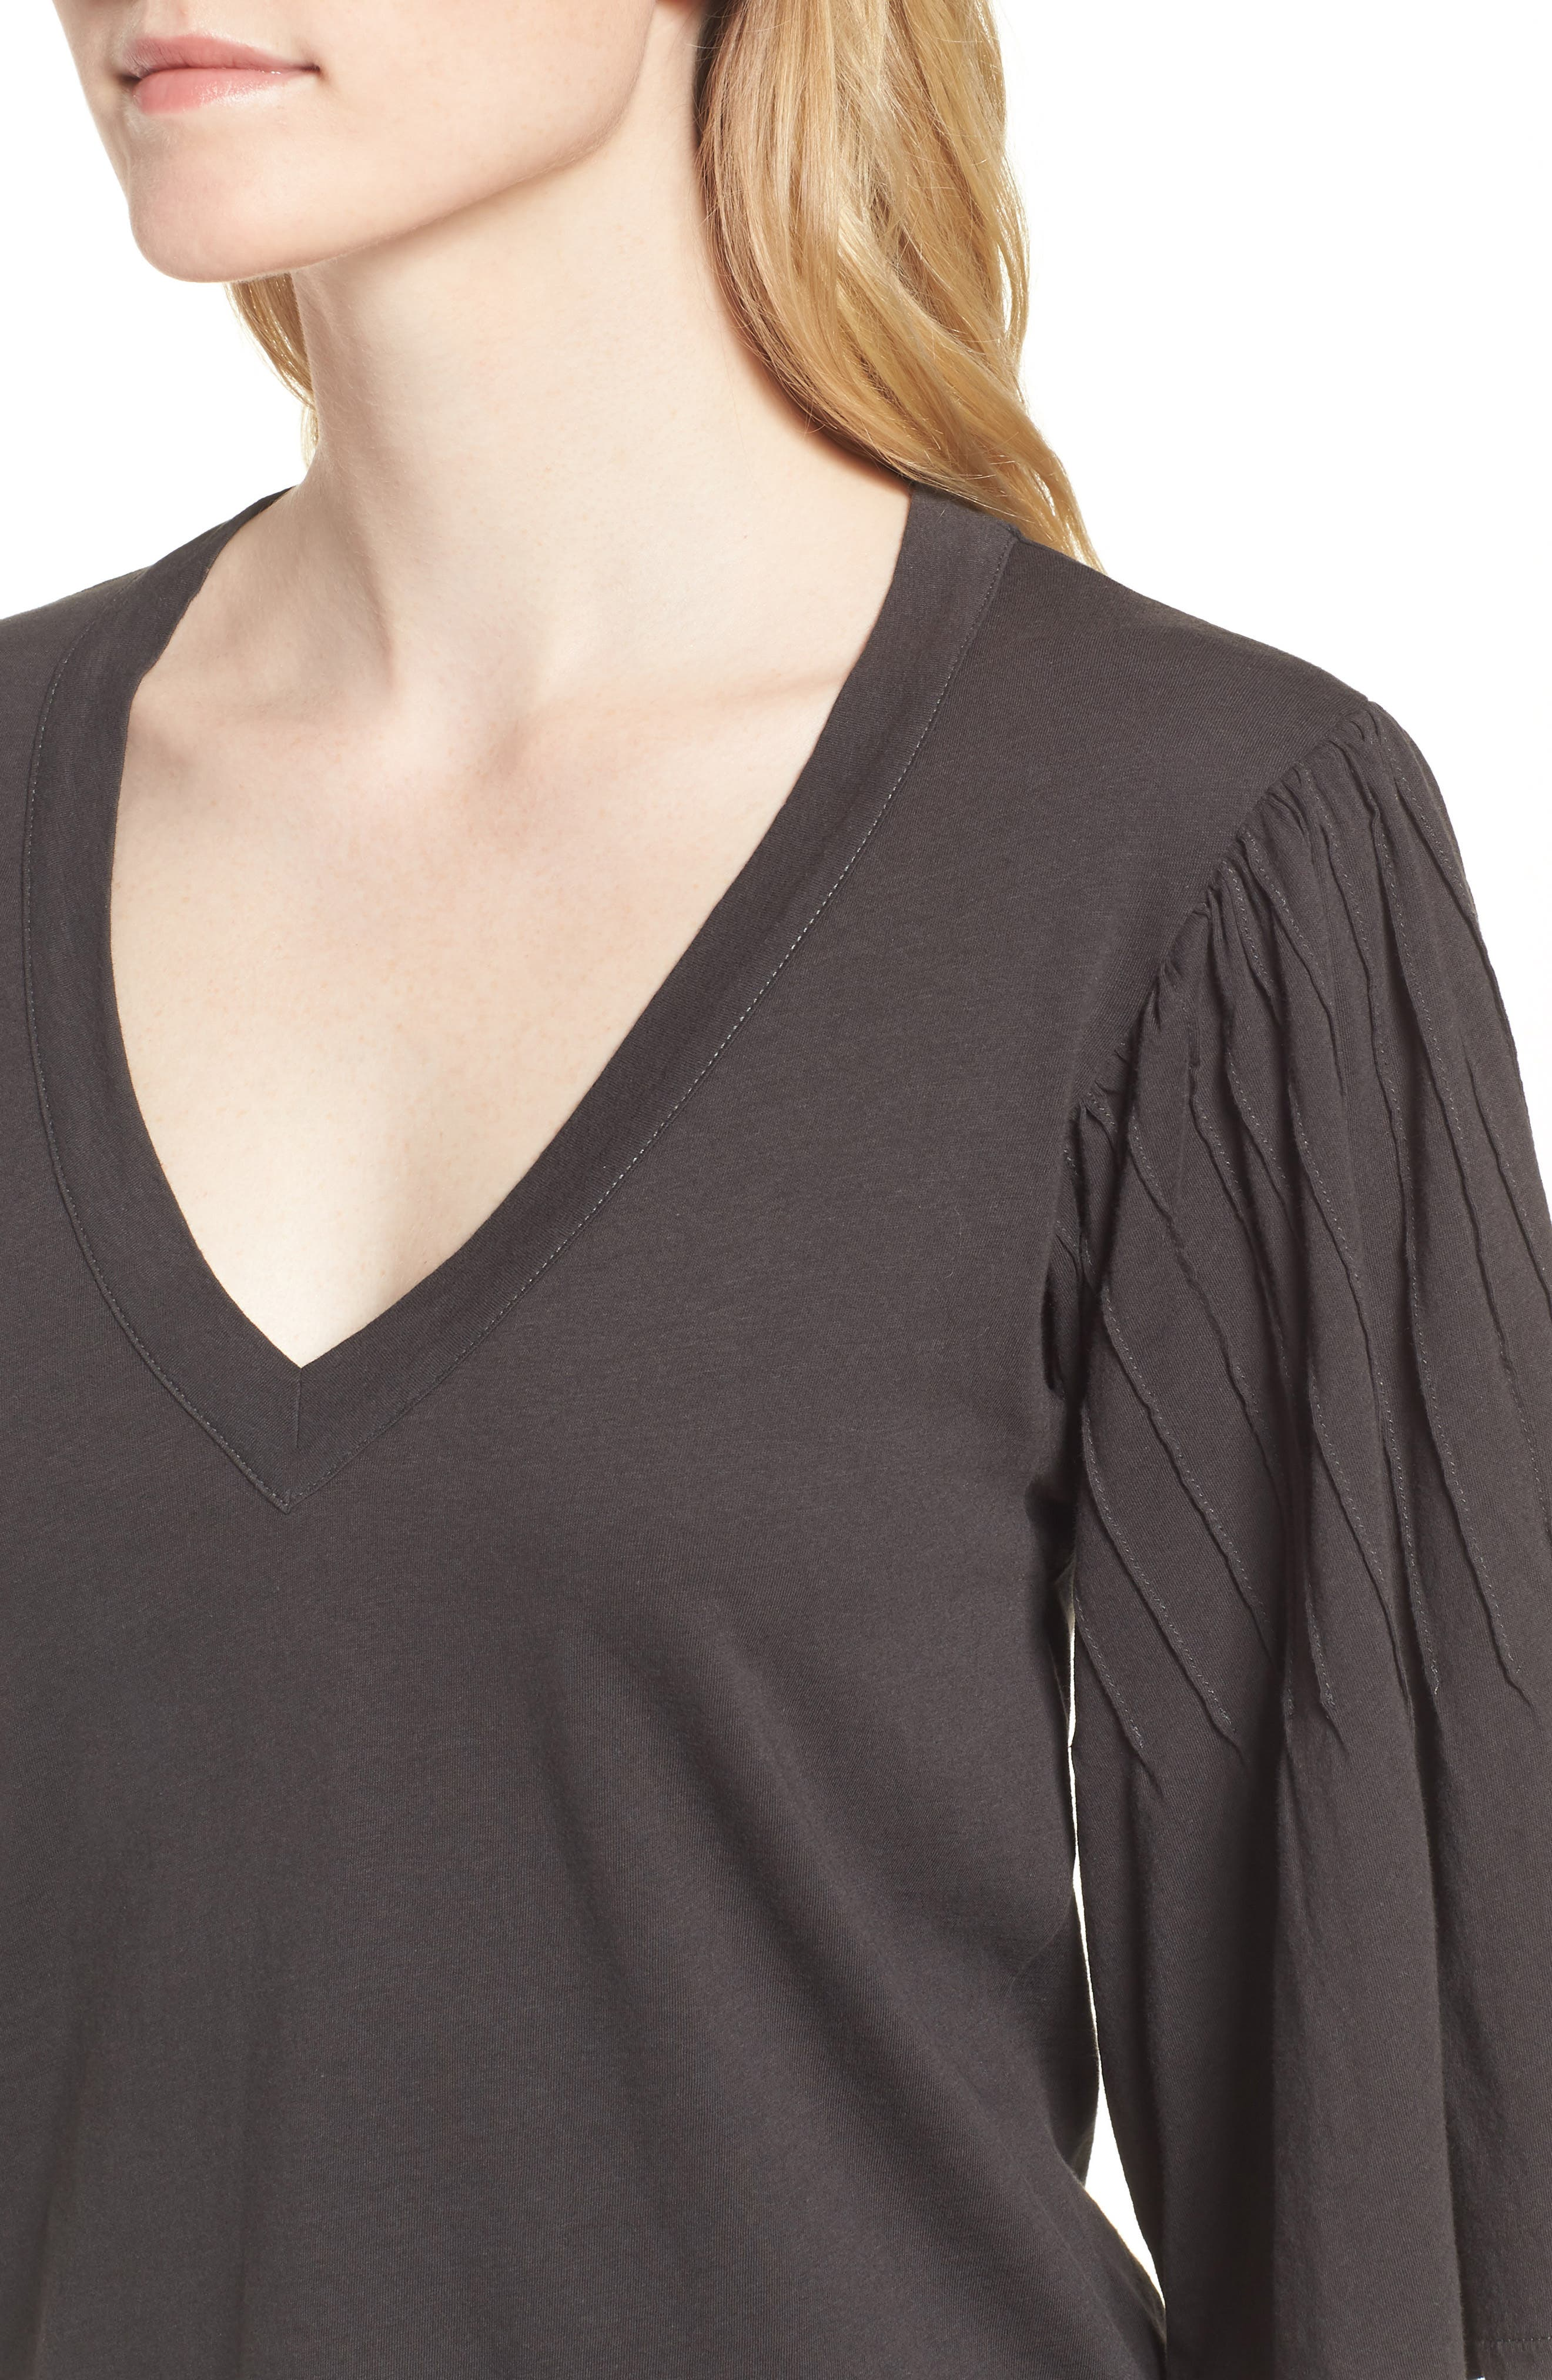 Pintuck Sleeve Cotton Blouse,                             Alternate thumbnail 4, color,                             010